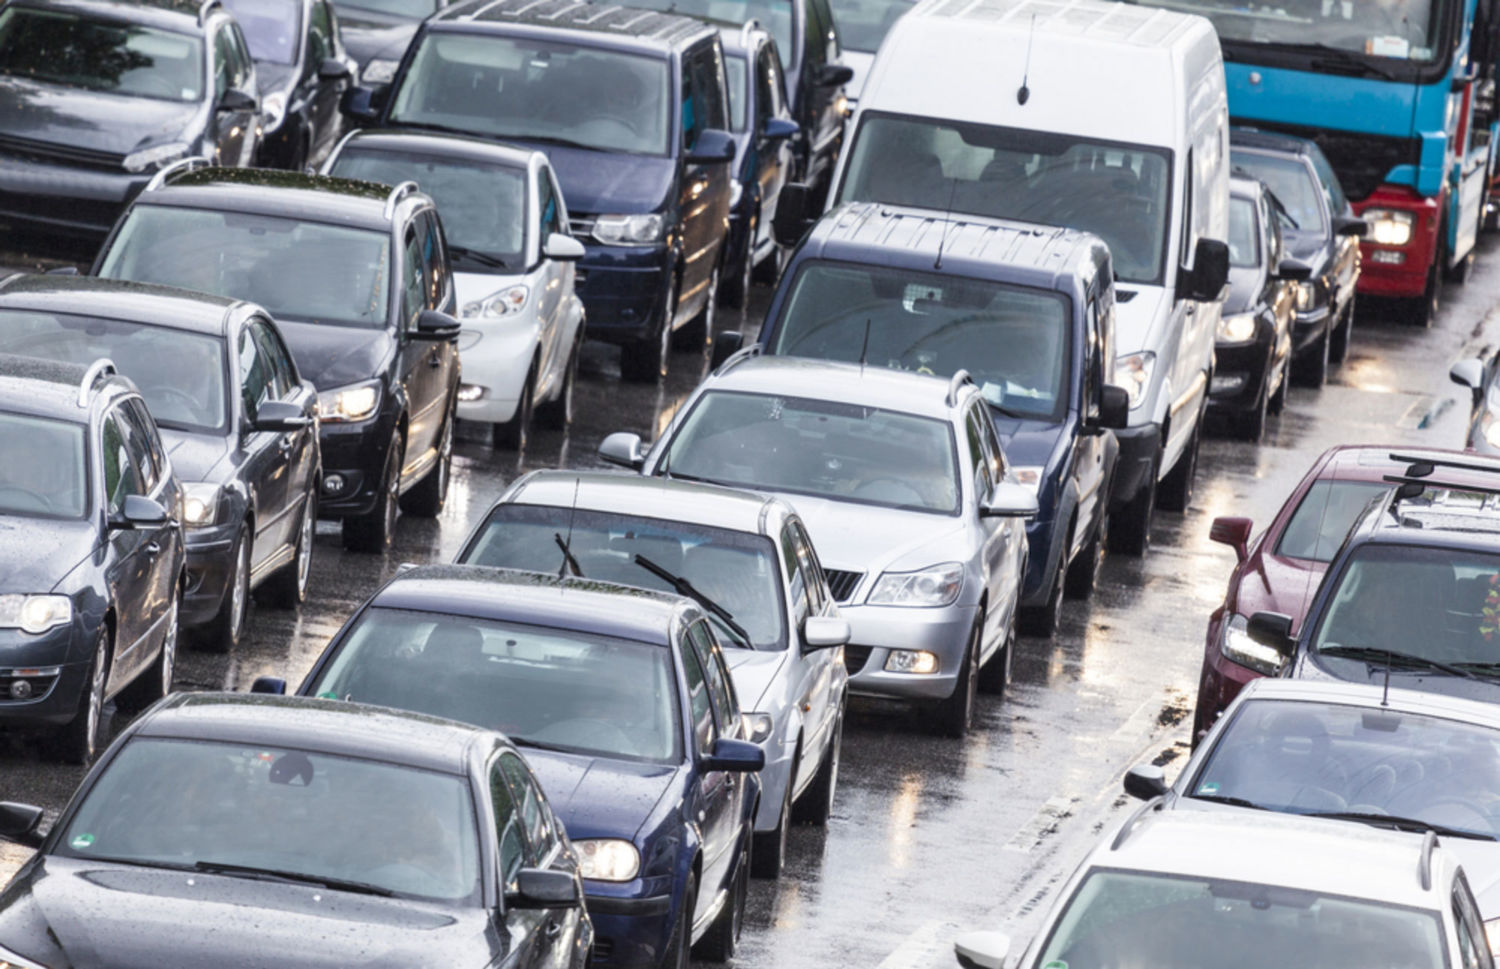 0bda8d0501ed73 German cities like Hamburg will soon have to ban older diesel vehicles from  busy downtown areas